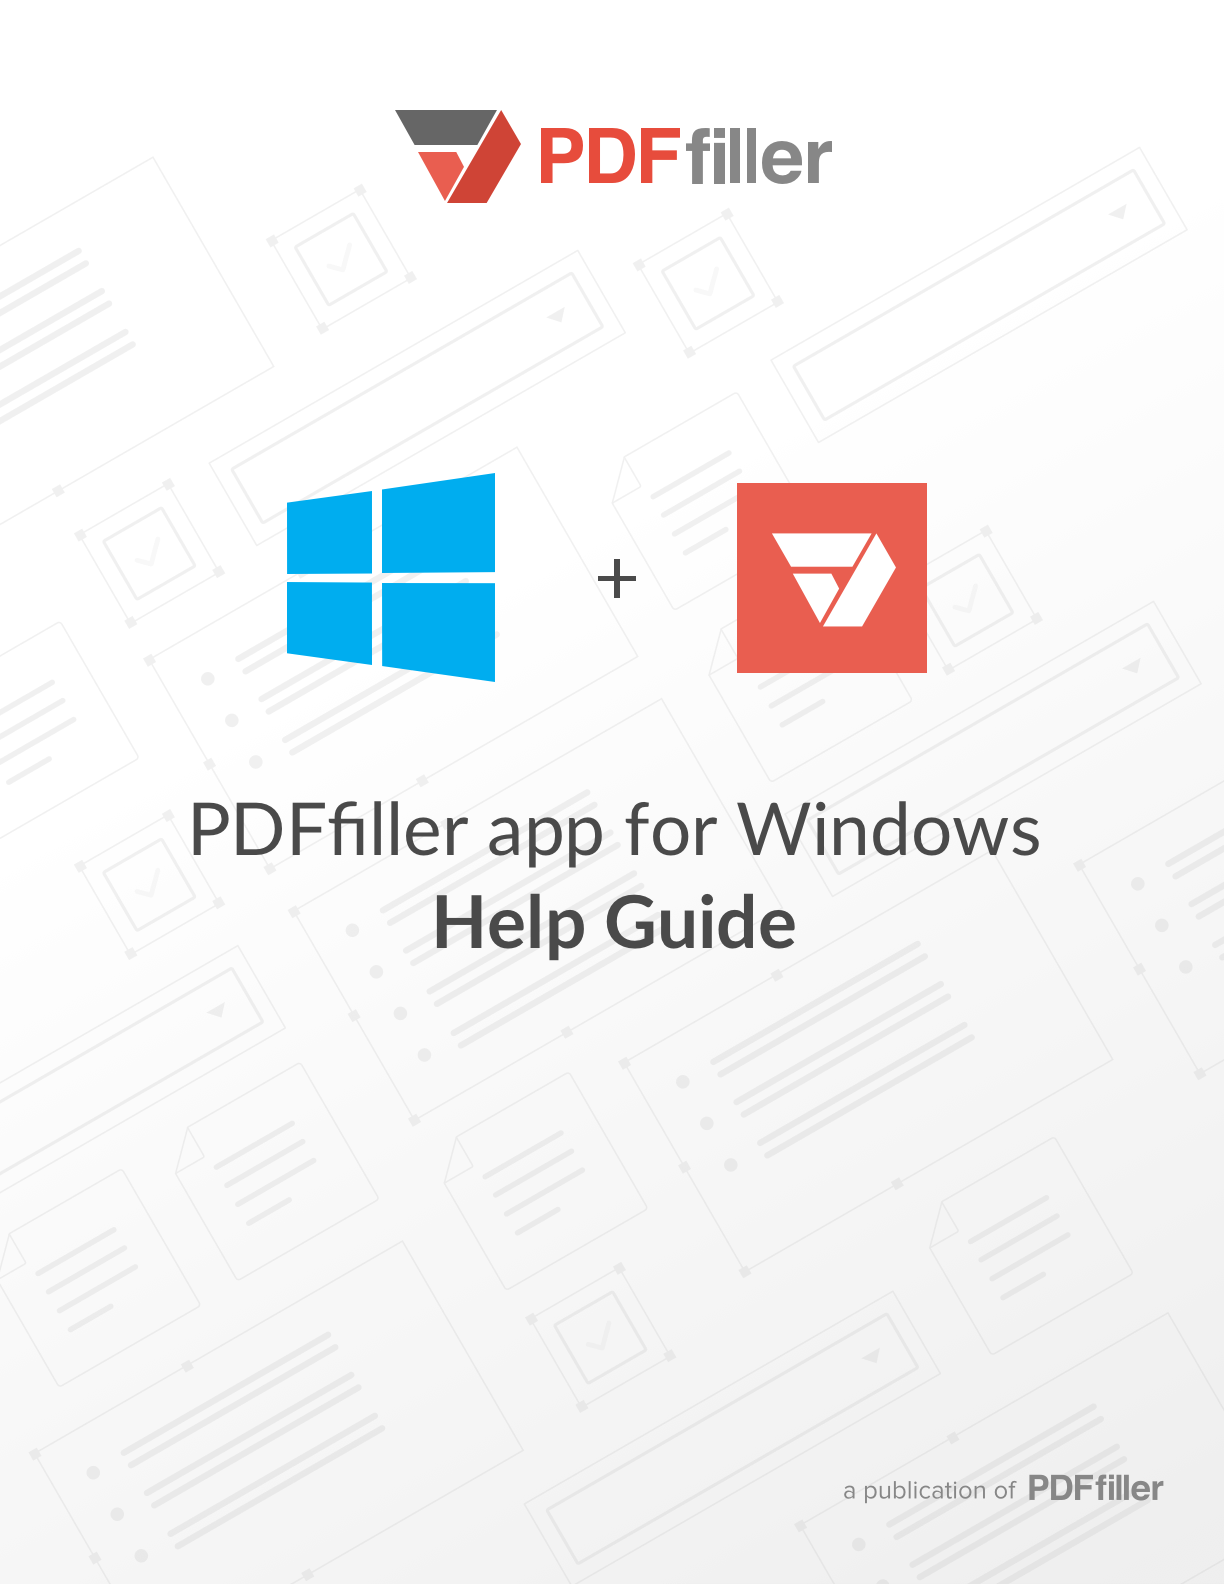 pdfFiller Guidebook